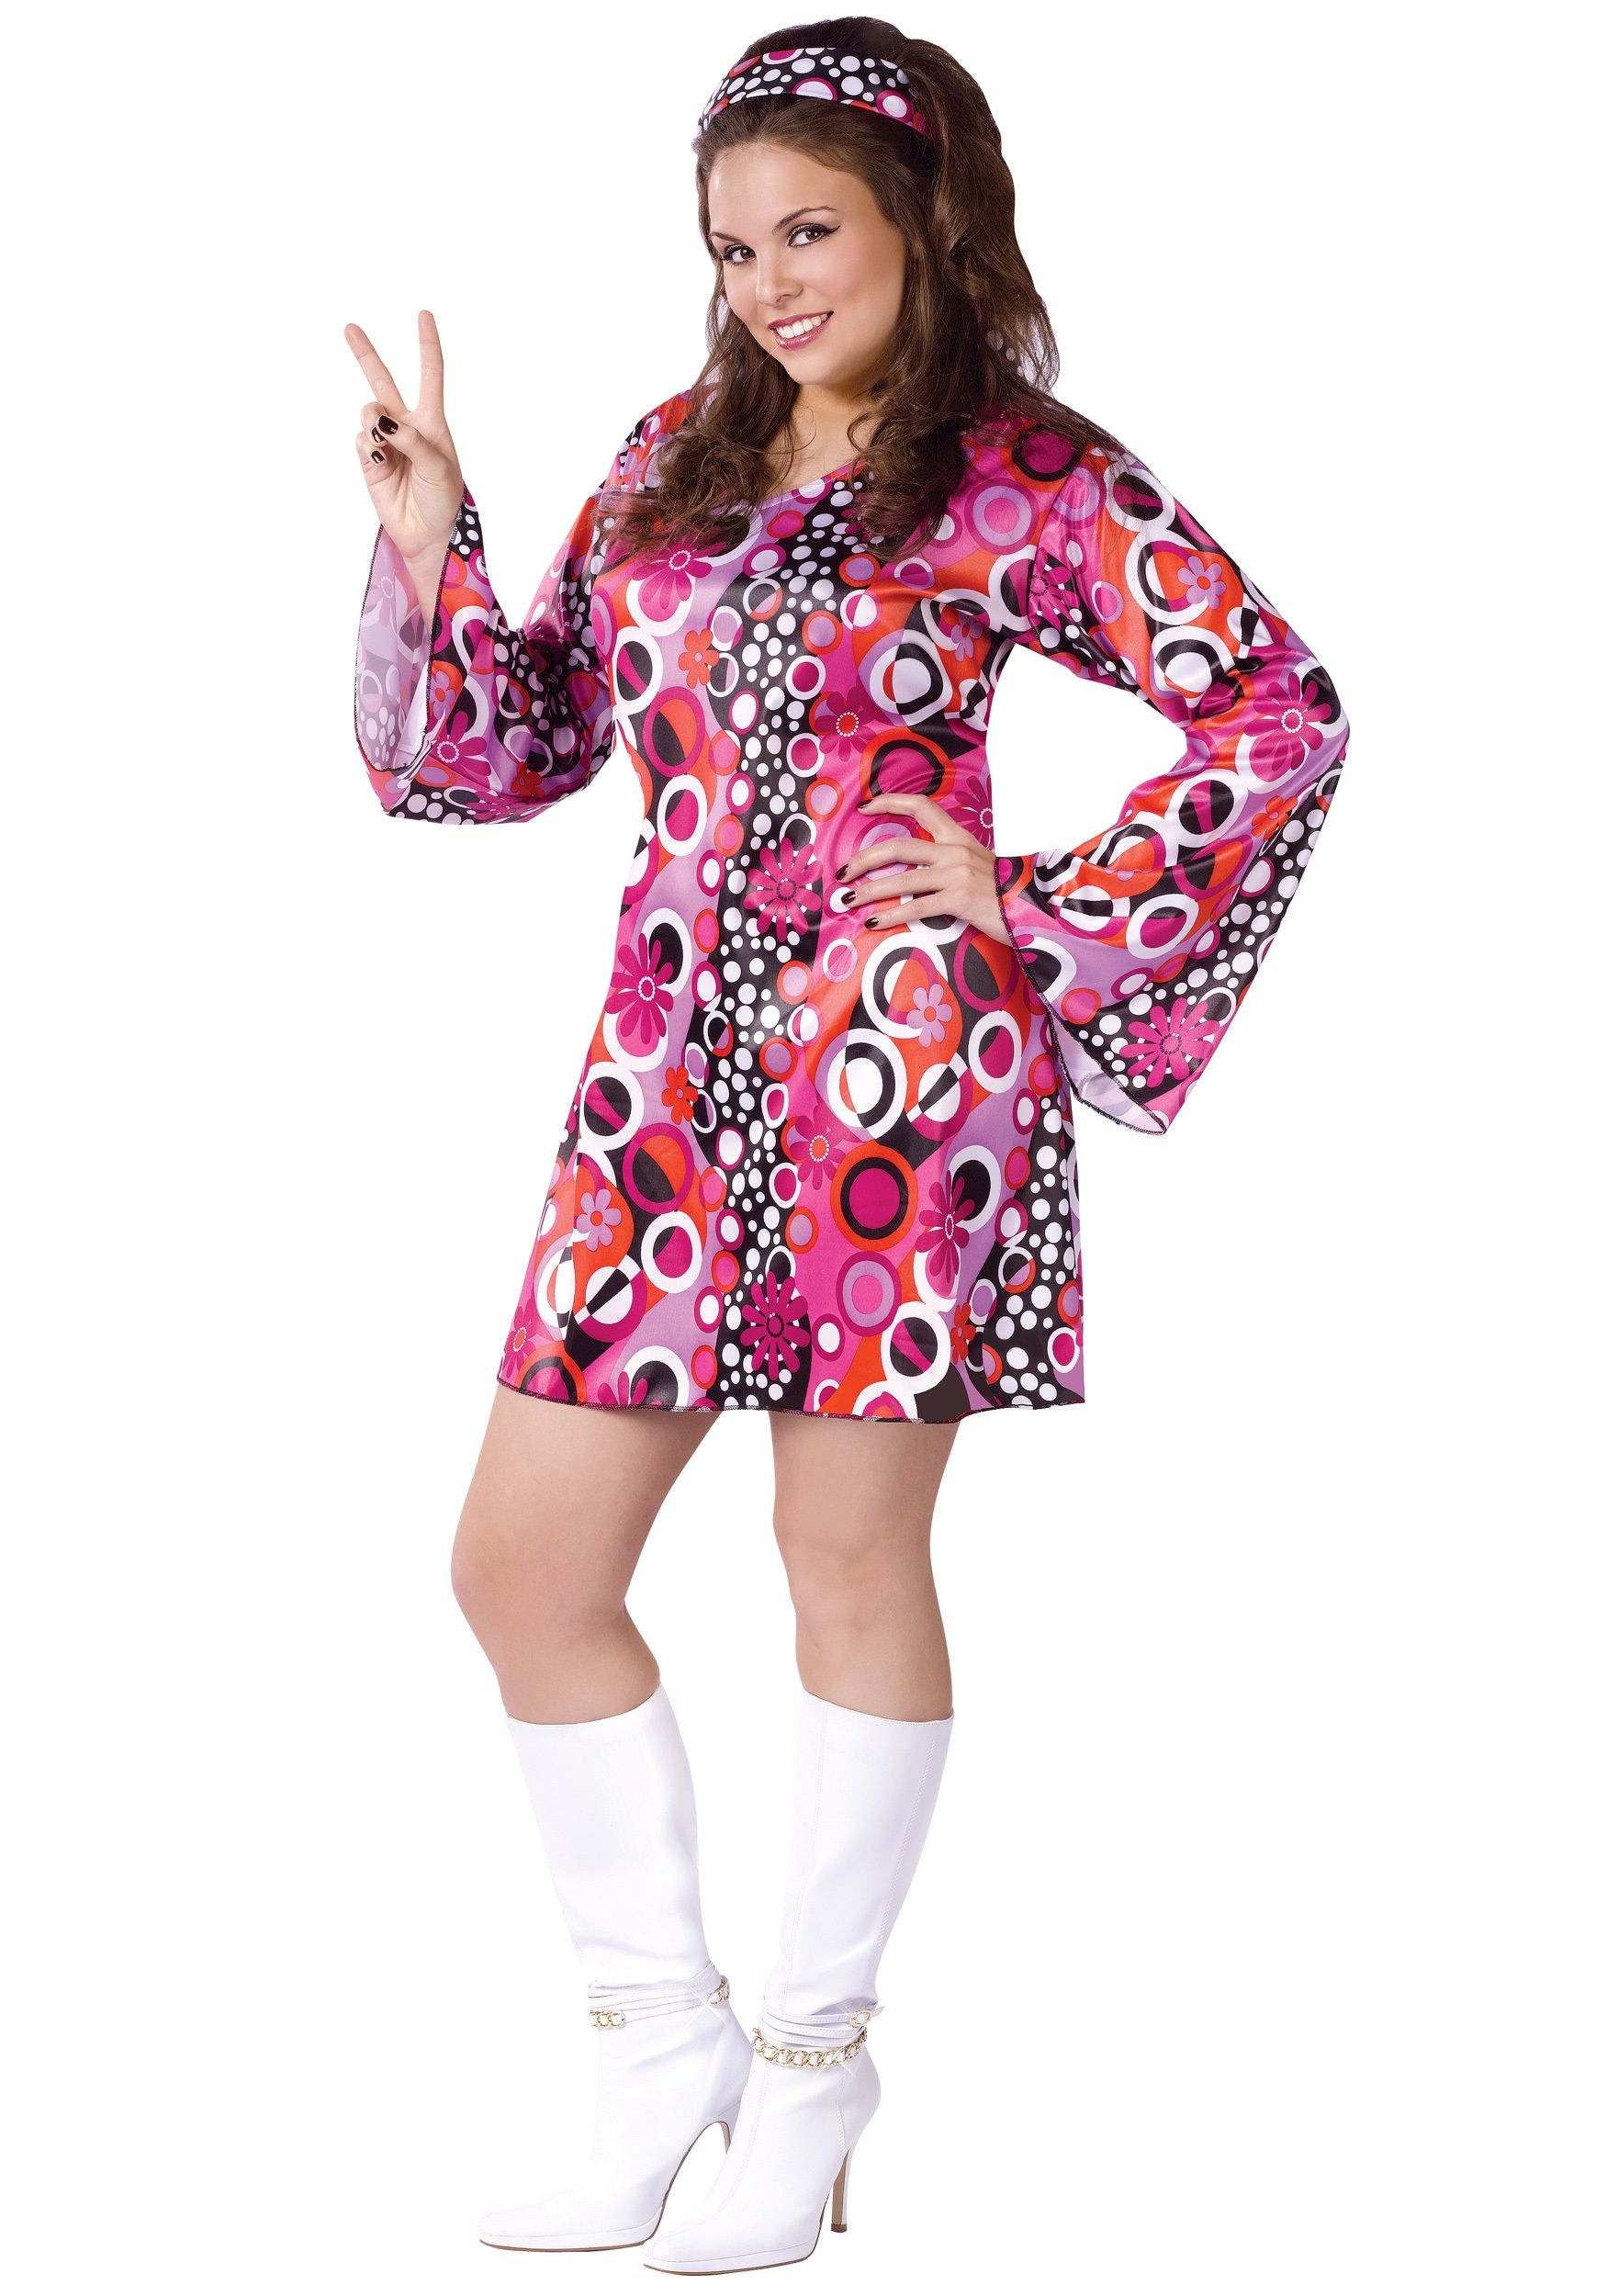 Plus Size Feelin Groovy Dress Plus Size Halloween